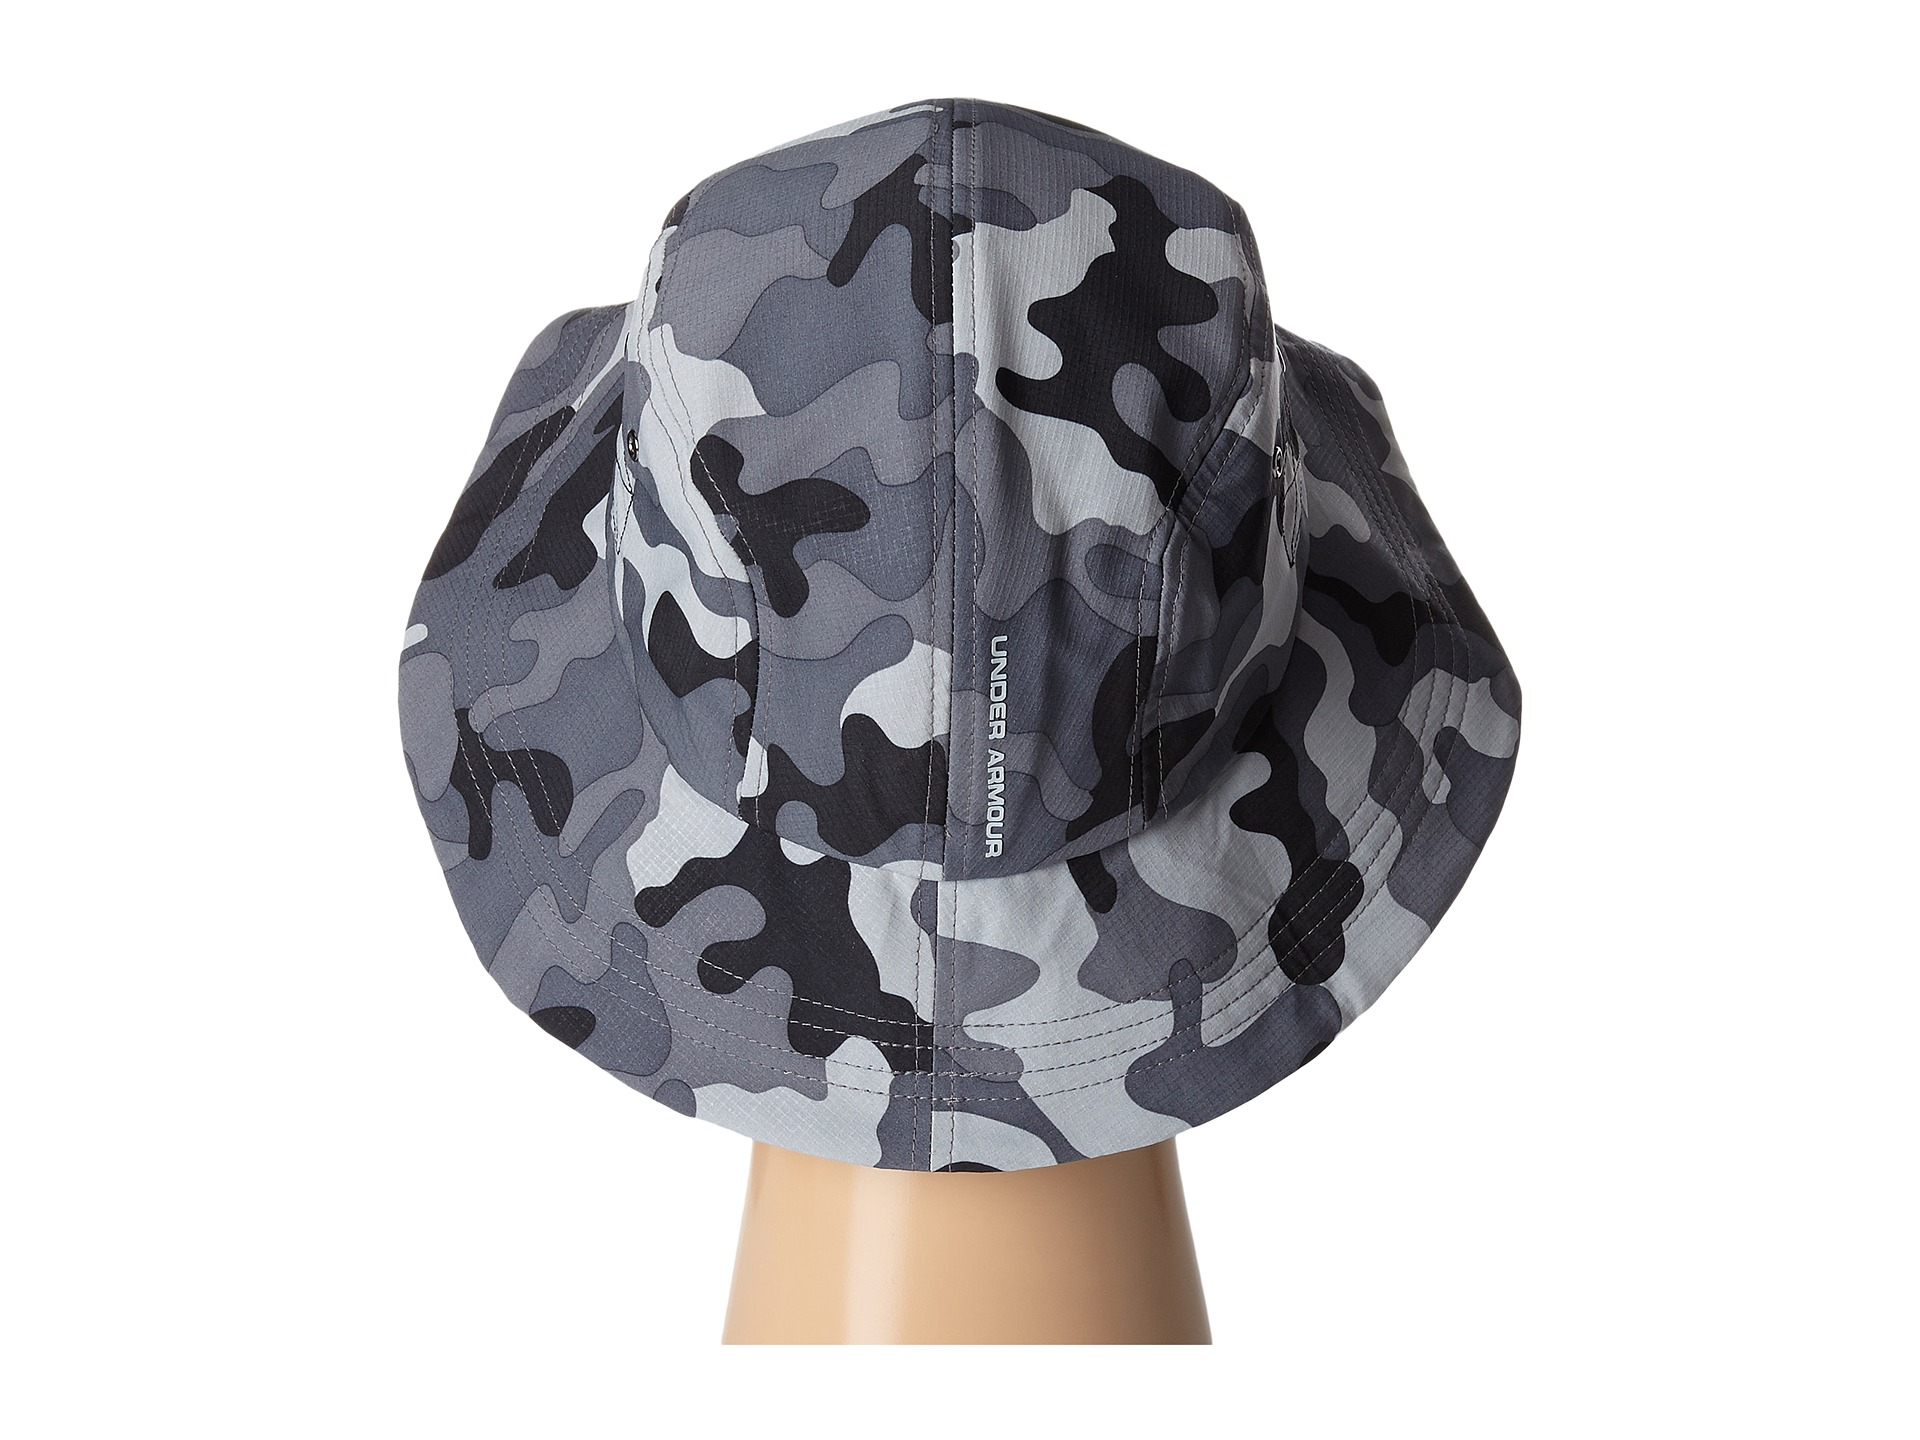 ... spain lyst under armour ua toughest bucket hat in gray for men 4be5c  0ec25 ... c6e134a1abf